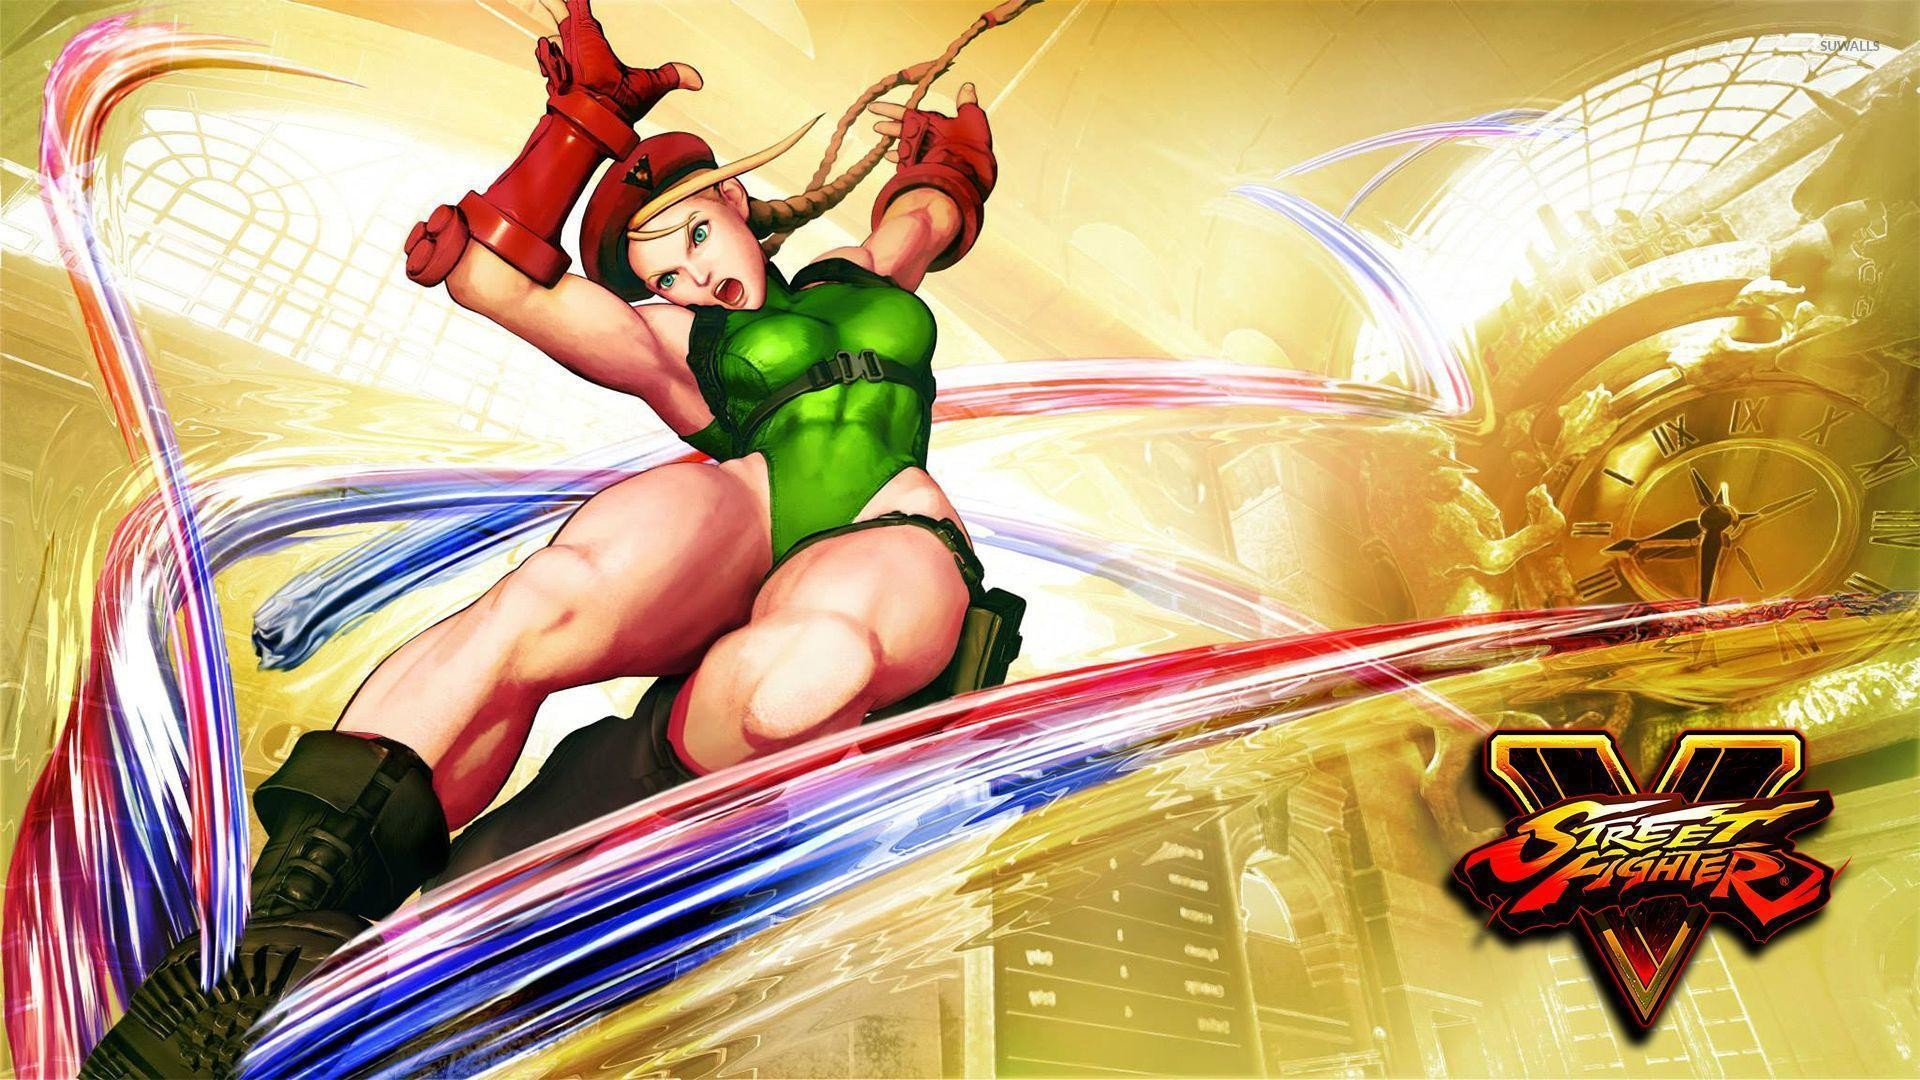 Cammy in Street Fighter V wallpaper – Game wallpapers – #52713